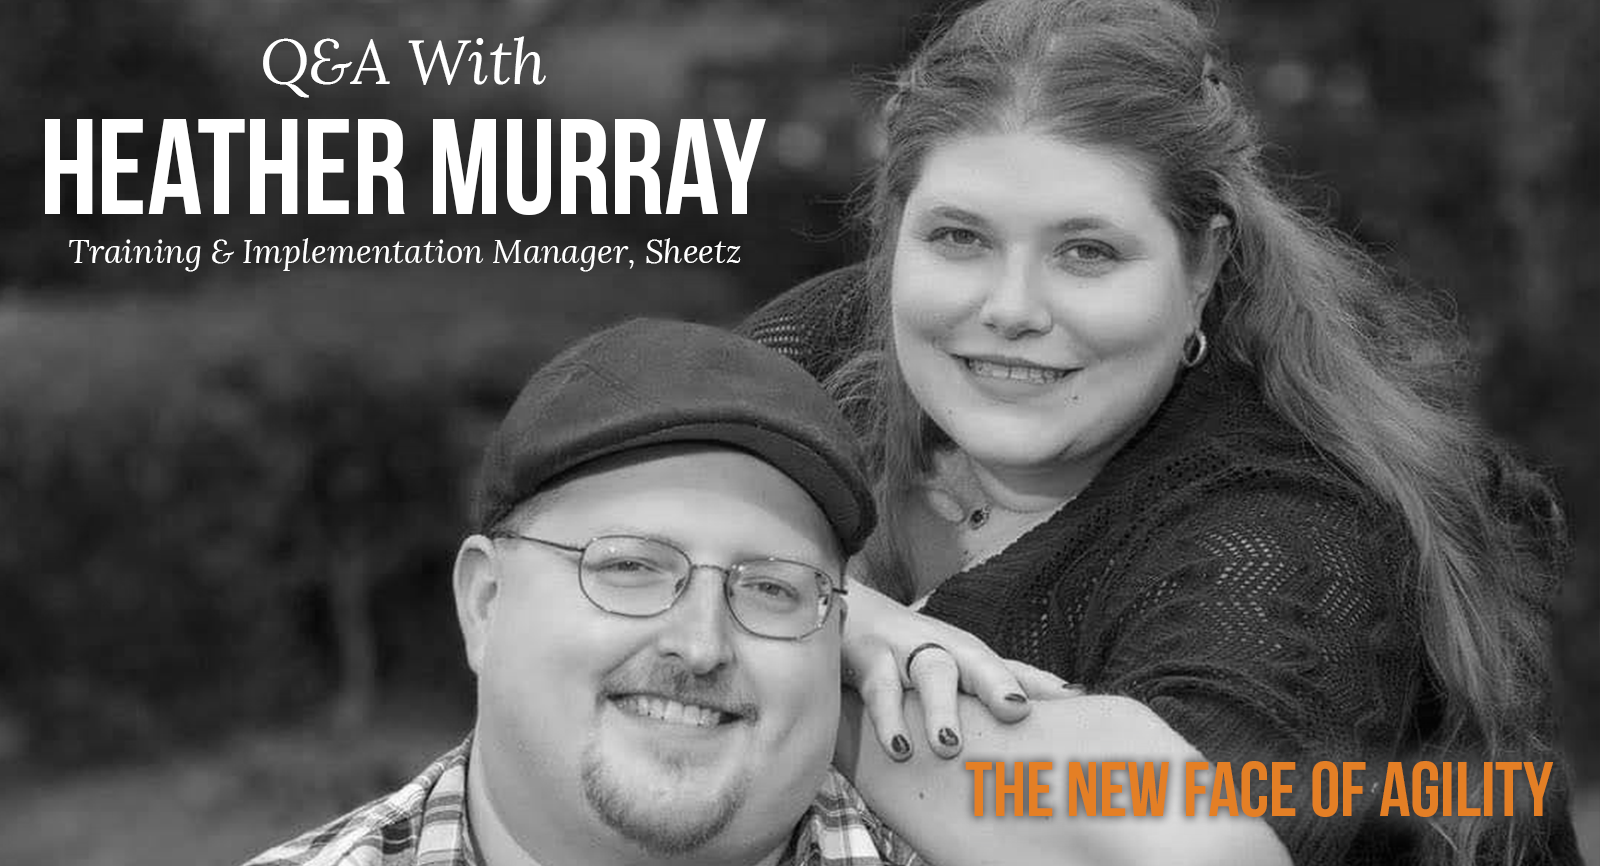 The New Face of Agility Q&A with Heather Murray